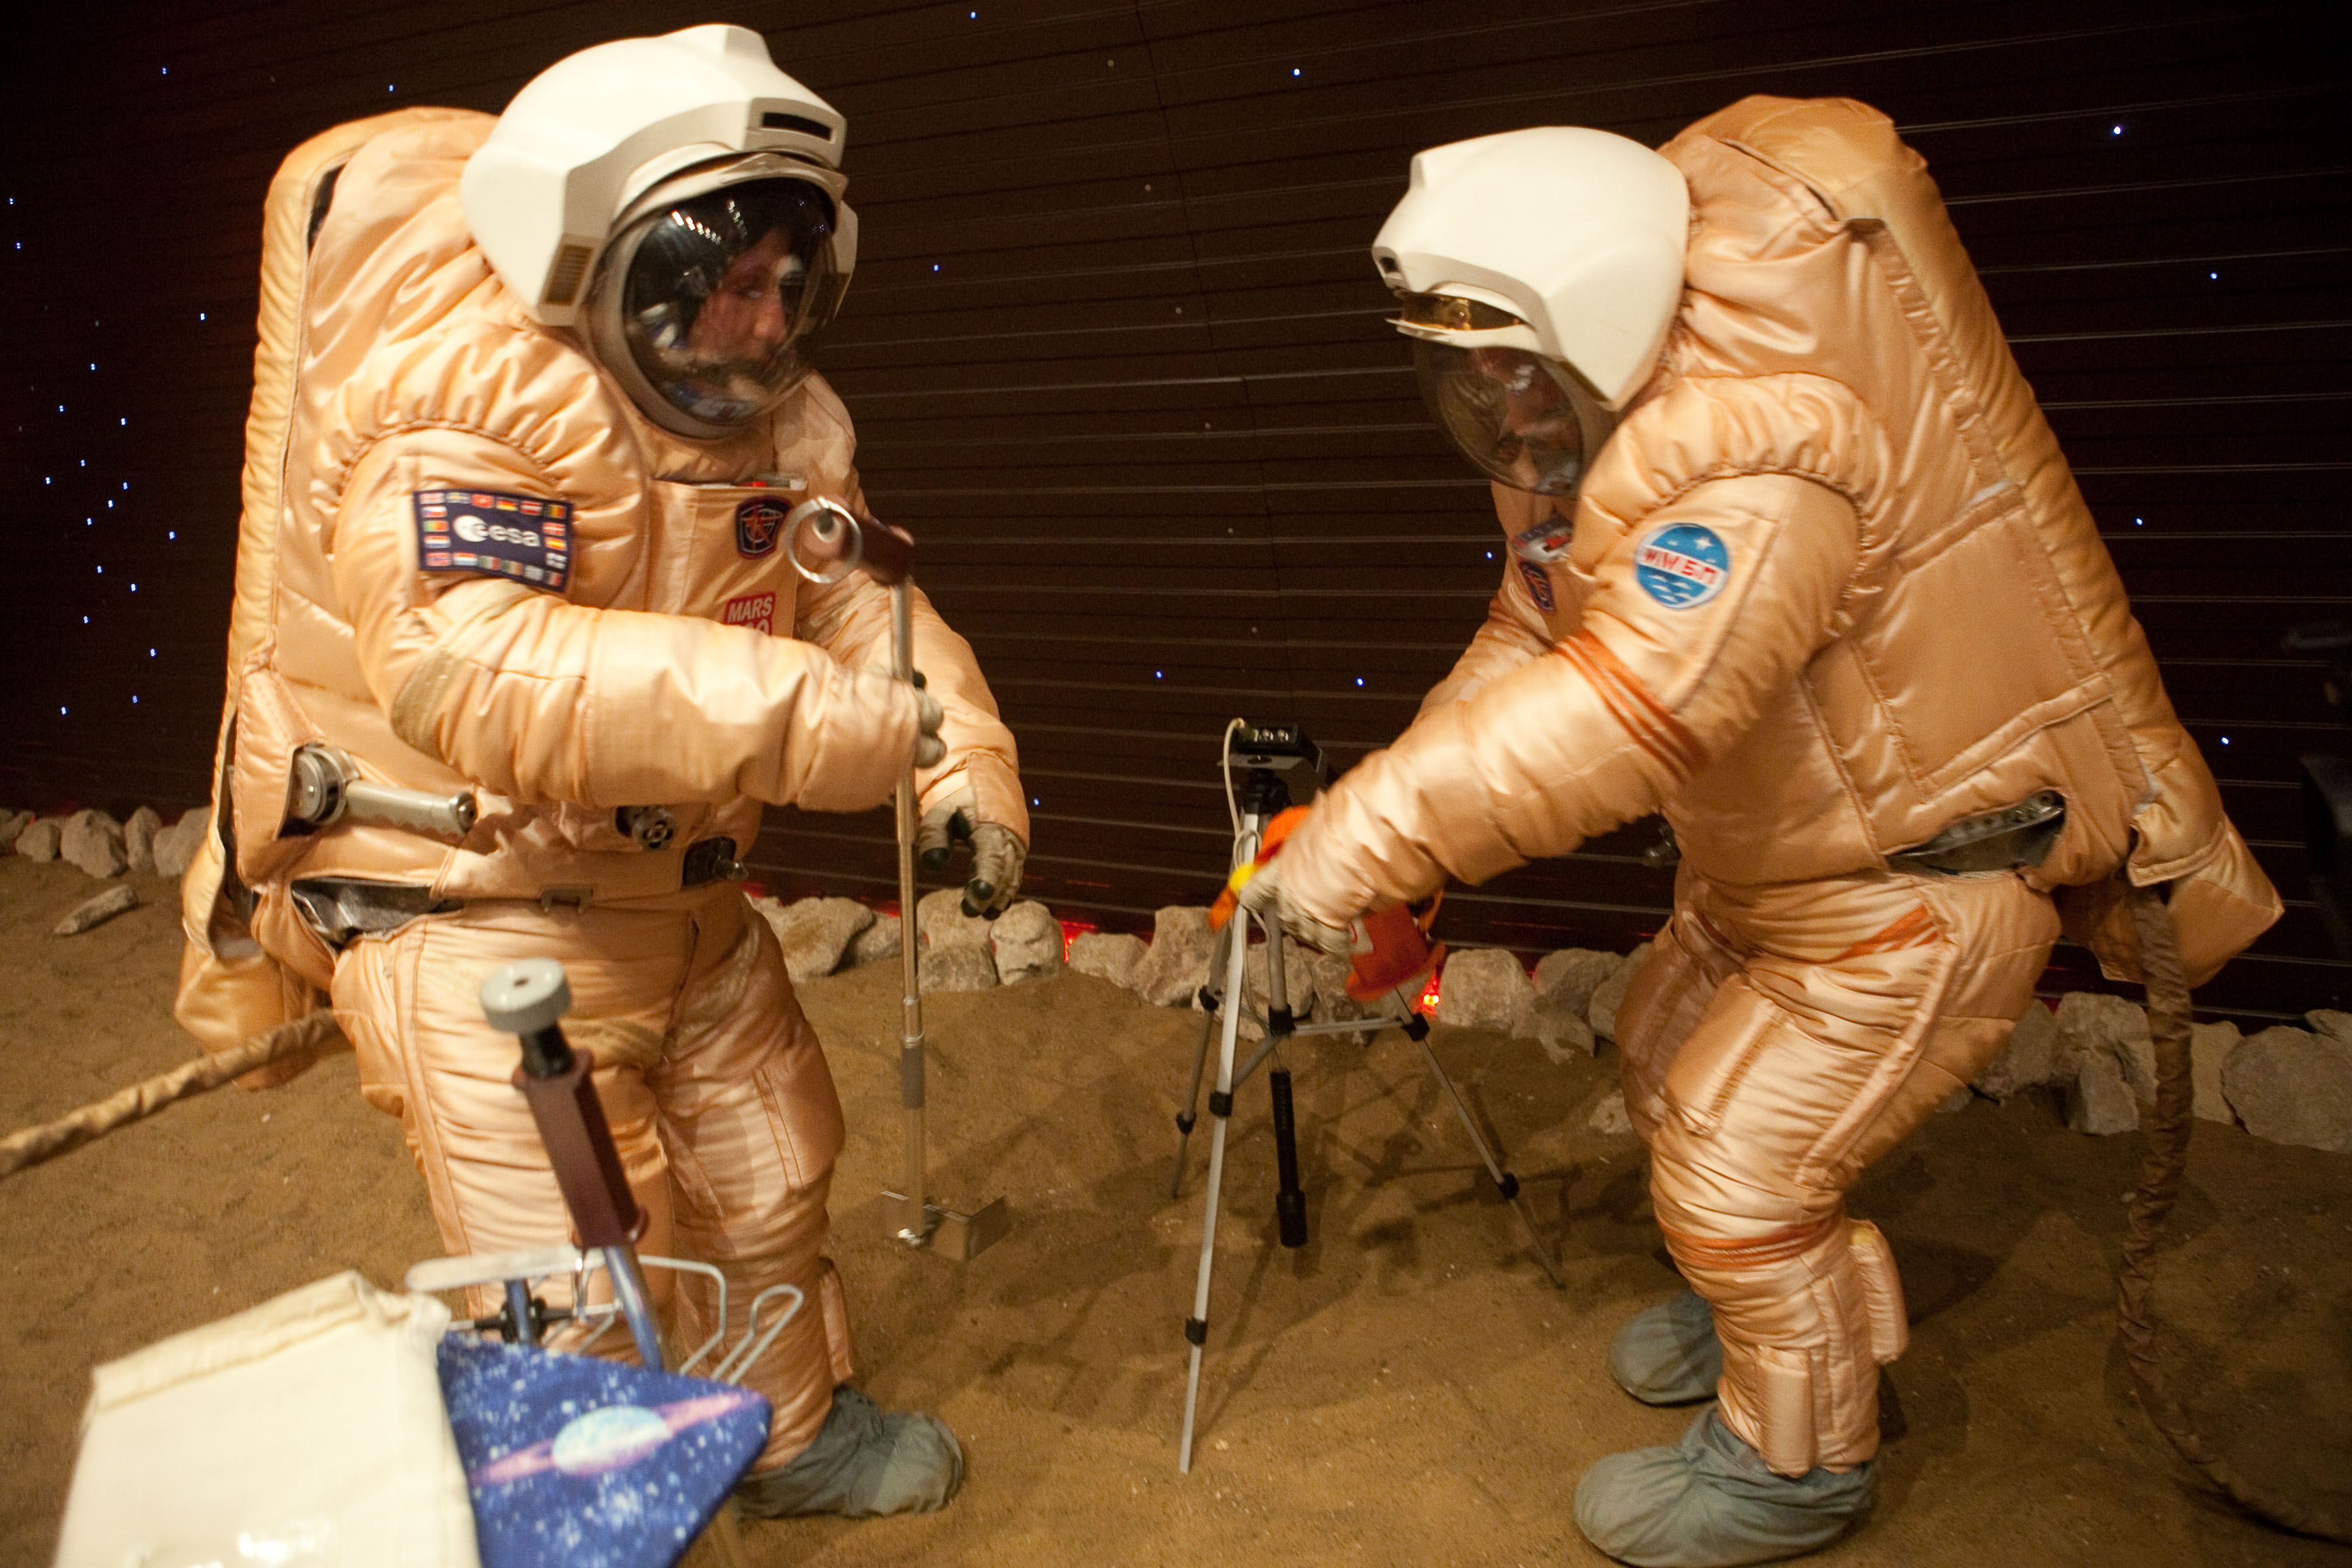 Astronauts on the surface of Mars_Mars500 mission_IMG_1450